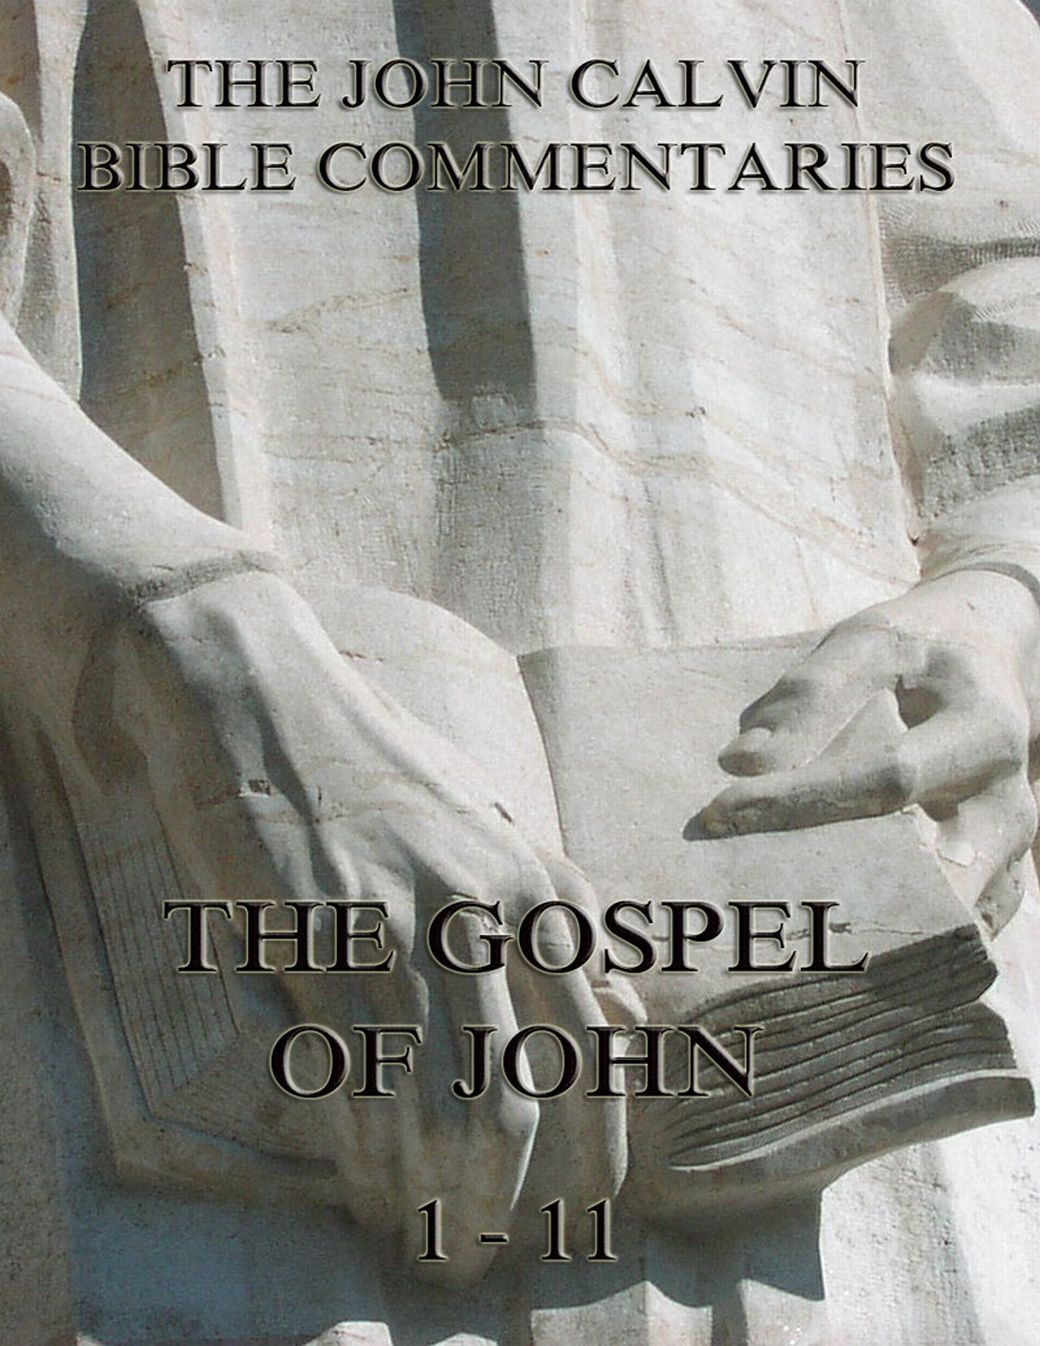 John Calvin John Calvin's Commentaries On The Gospel Of John Vol. 1 various gospel of john